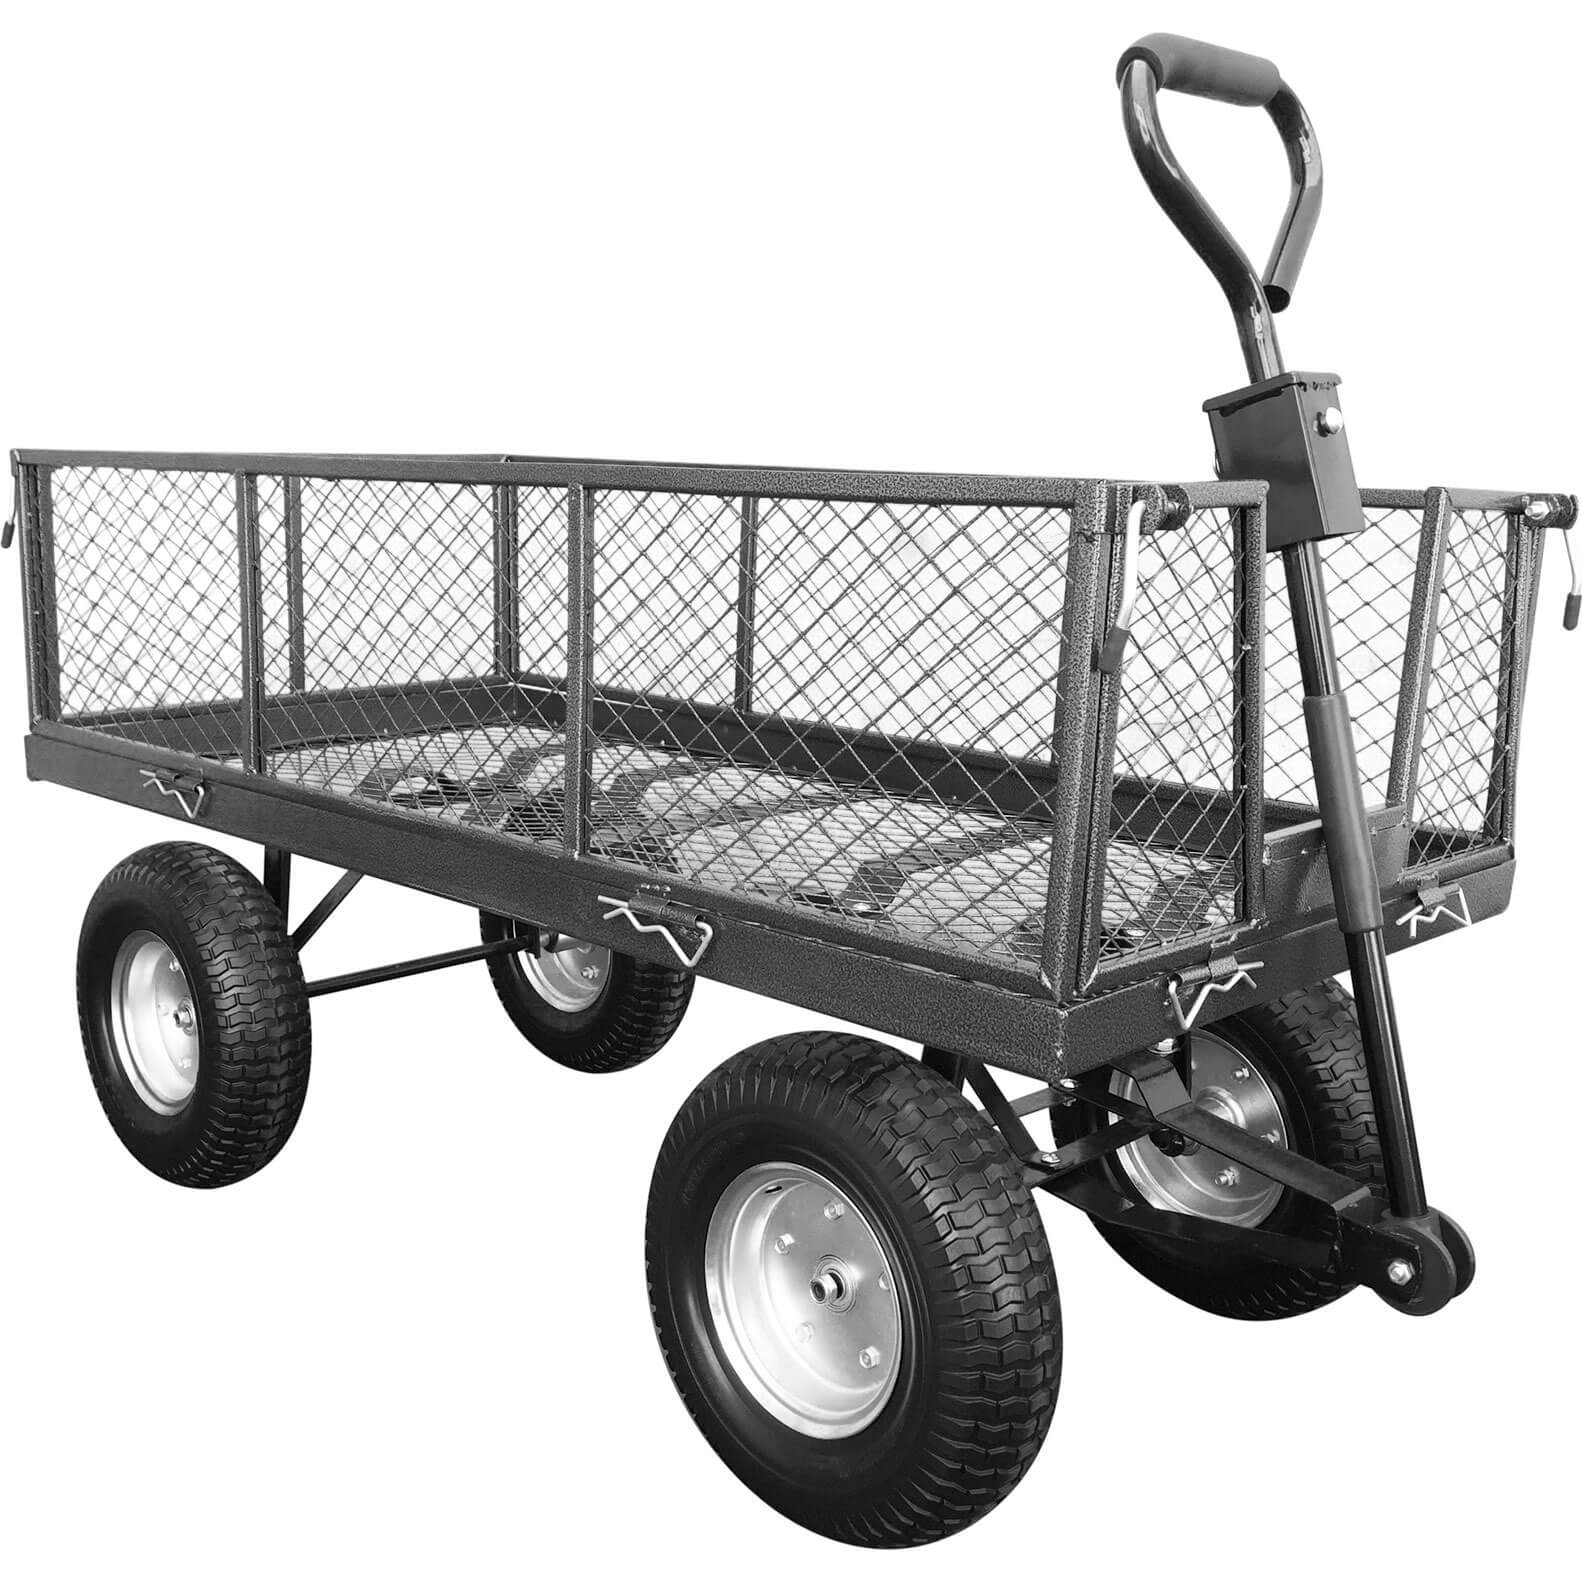 Handy LGT Large Steel Garden Trolley with Punctureless Wheels 350kg Capacity